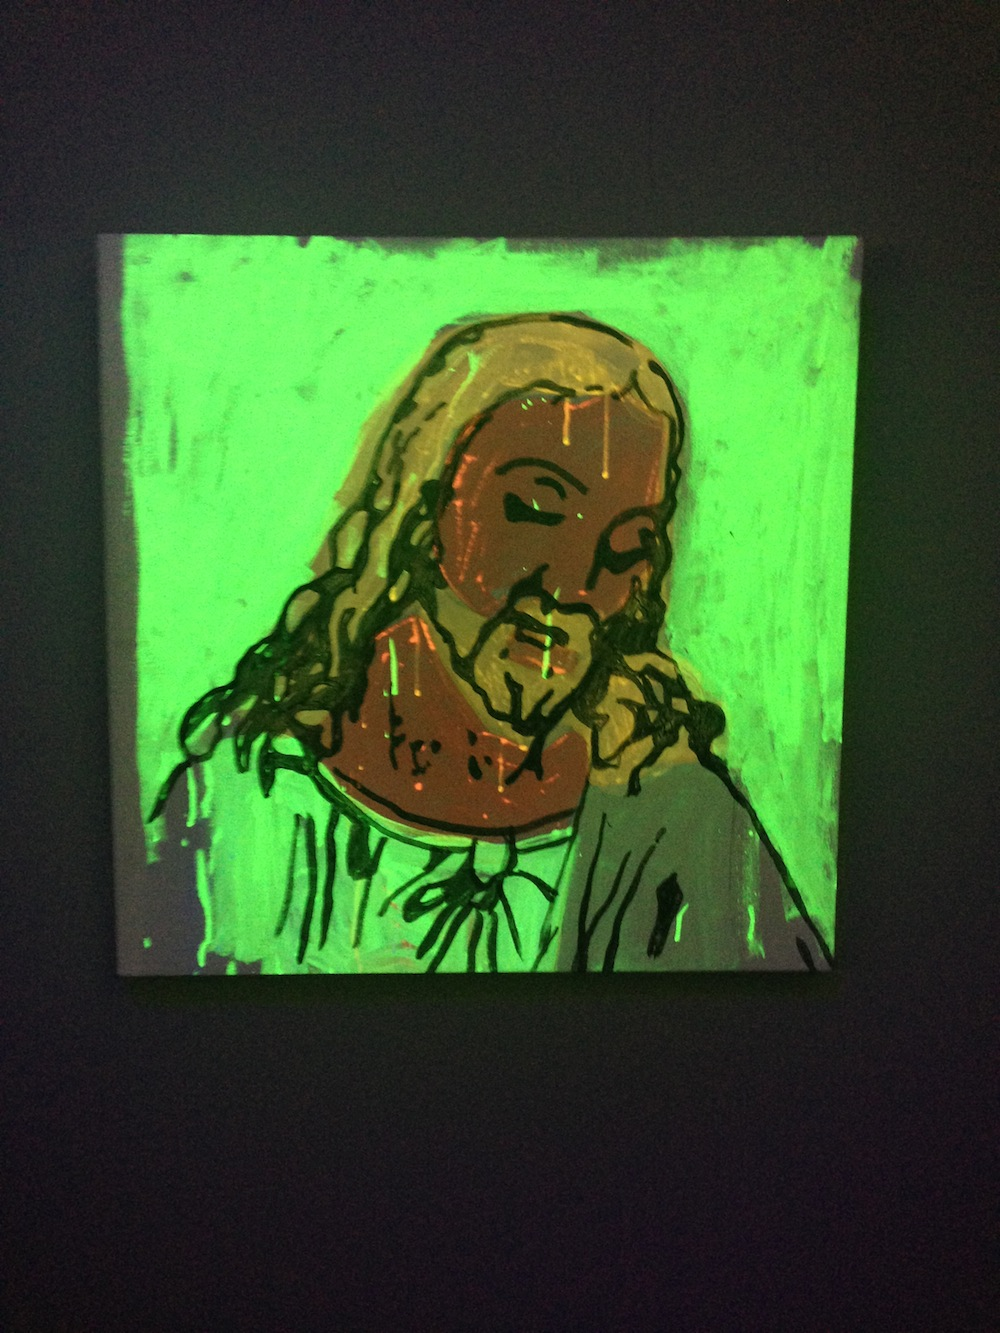 hight resolution of andy warhol detail of the last supper 1986 courtesy the brant foundation